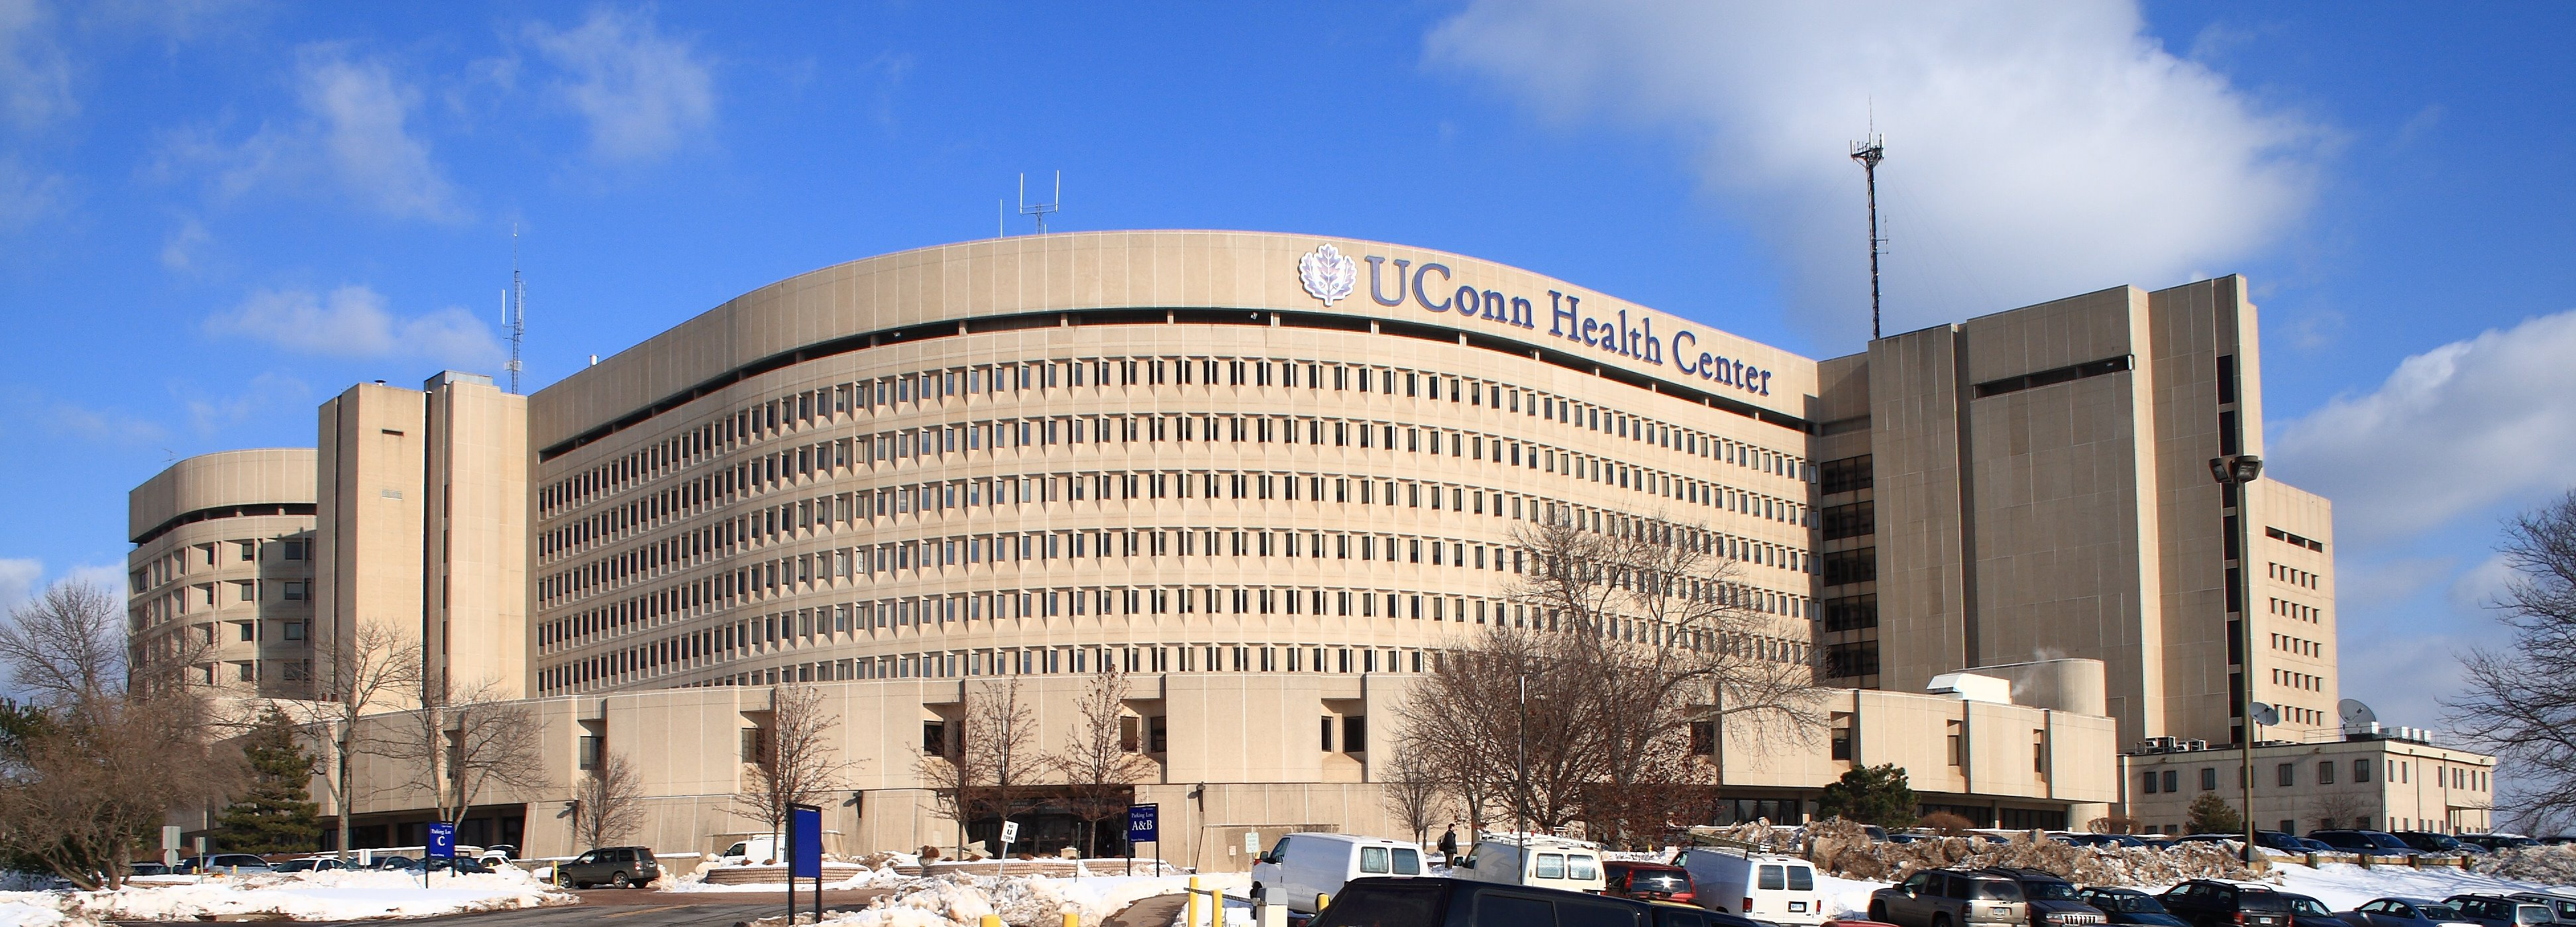 UConn Health gave out $1.5 million in bonuses in 2018 under union contract provision